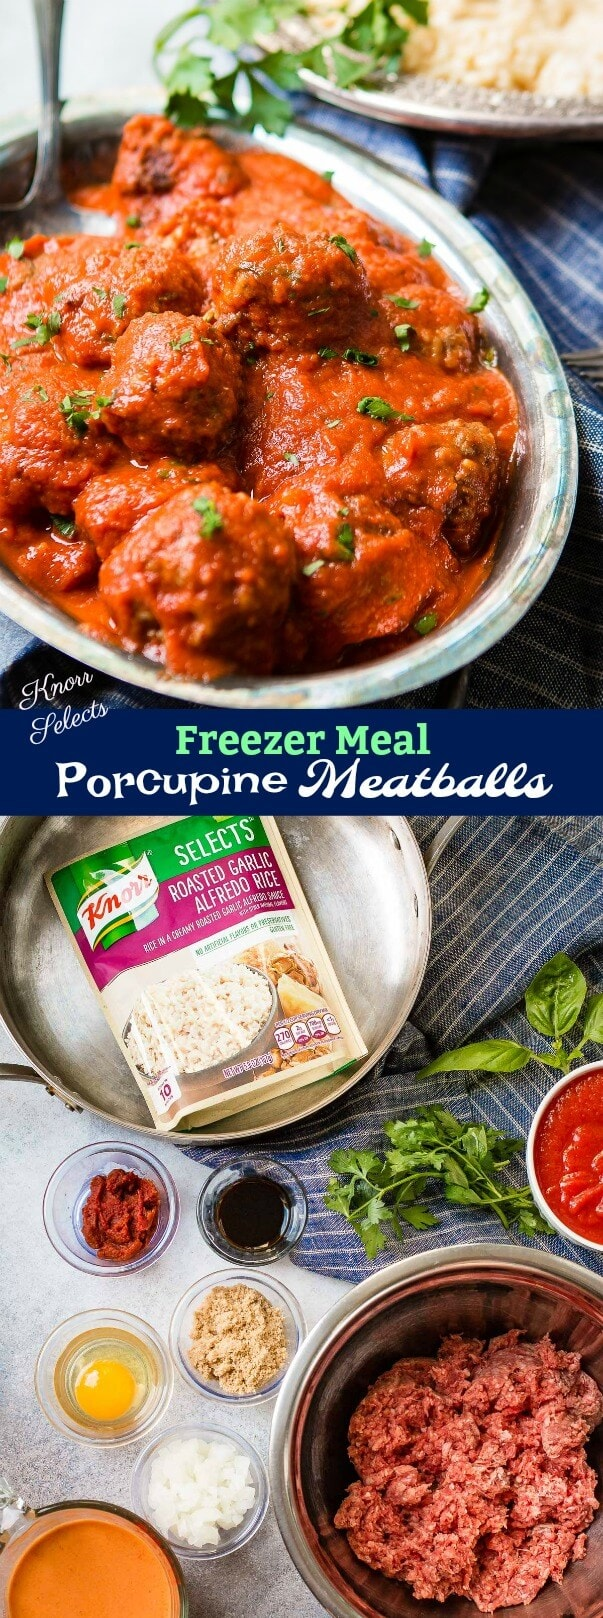 These easy porcupine meatballs are one of our favorite freezer meals to prep ahead of time! Bonus: they're coated in a creamy tomato sauce for serving.